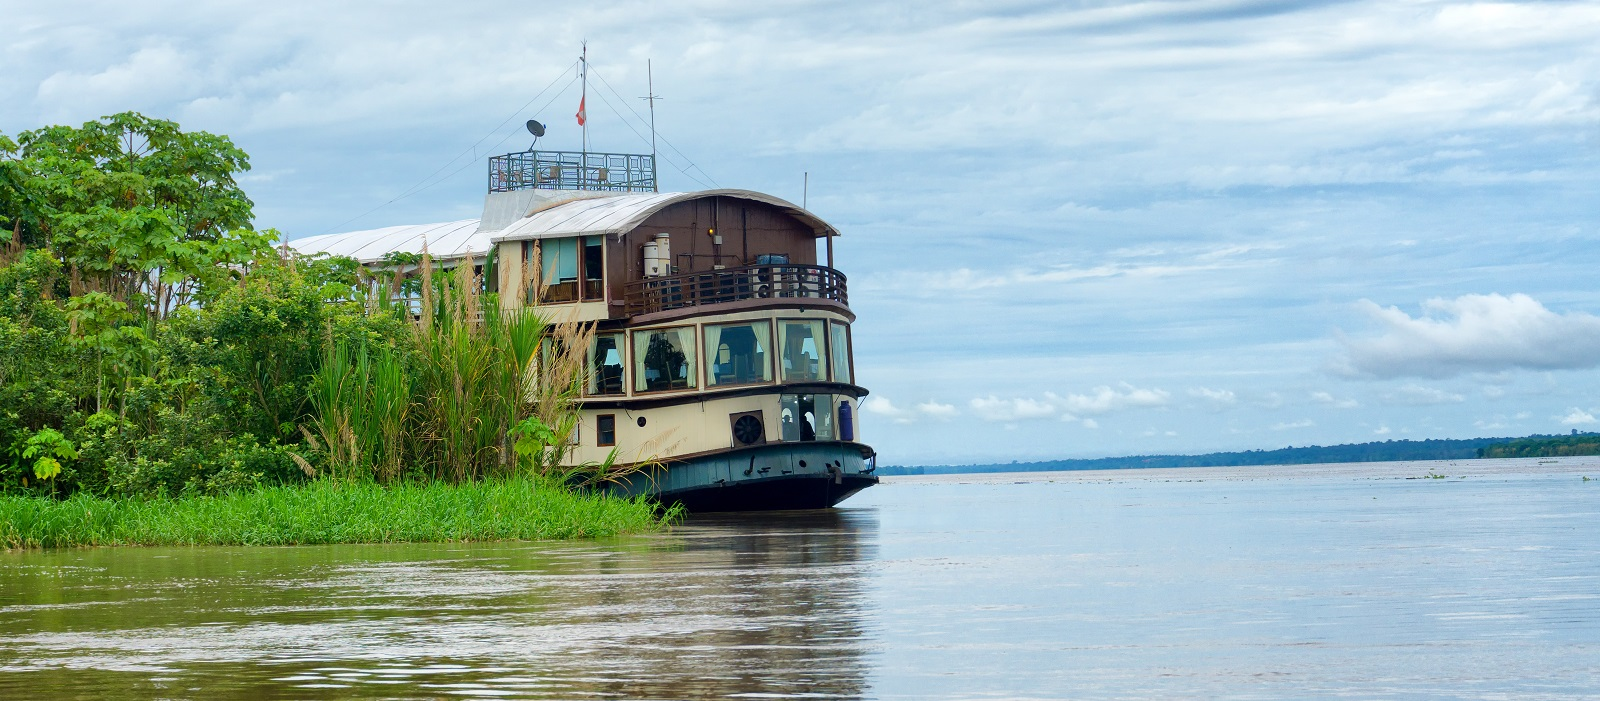 Exclusive Travel Tips For Your Destination Iquitos Cruise In Peru